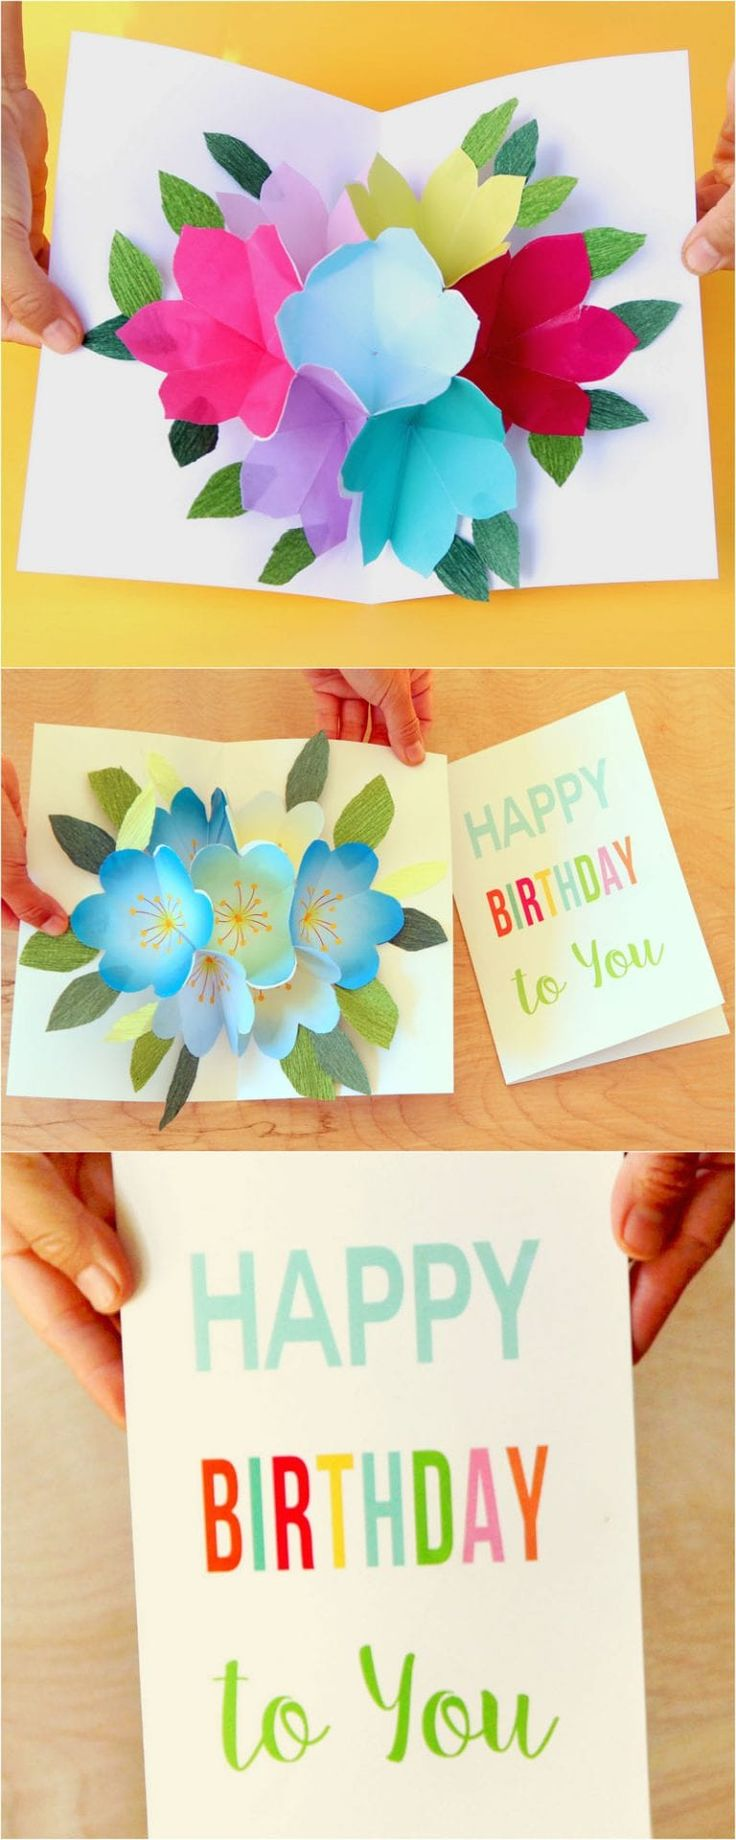 23 Best Birthday Images On Pinterest Birthdays Crafts And